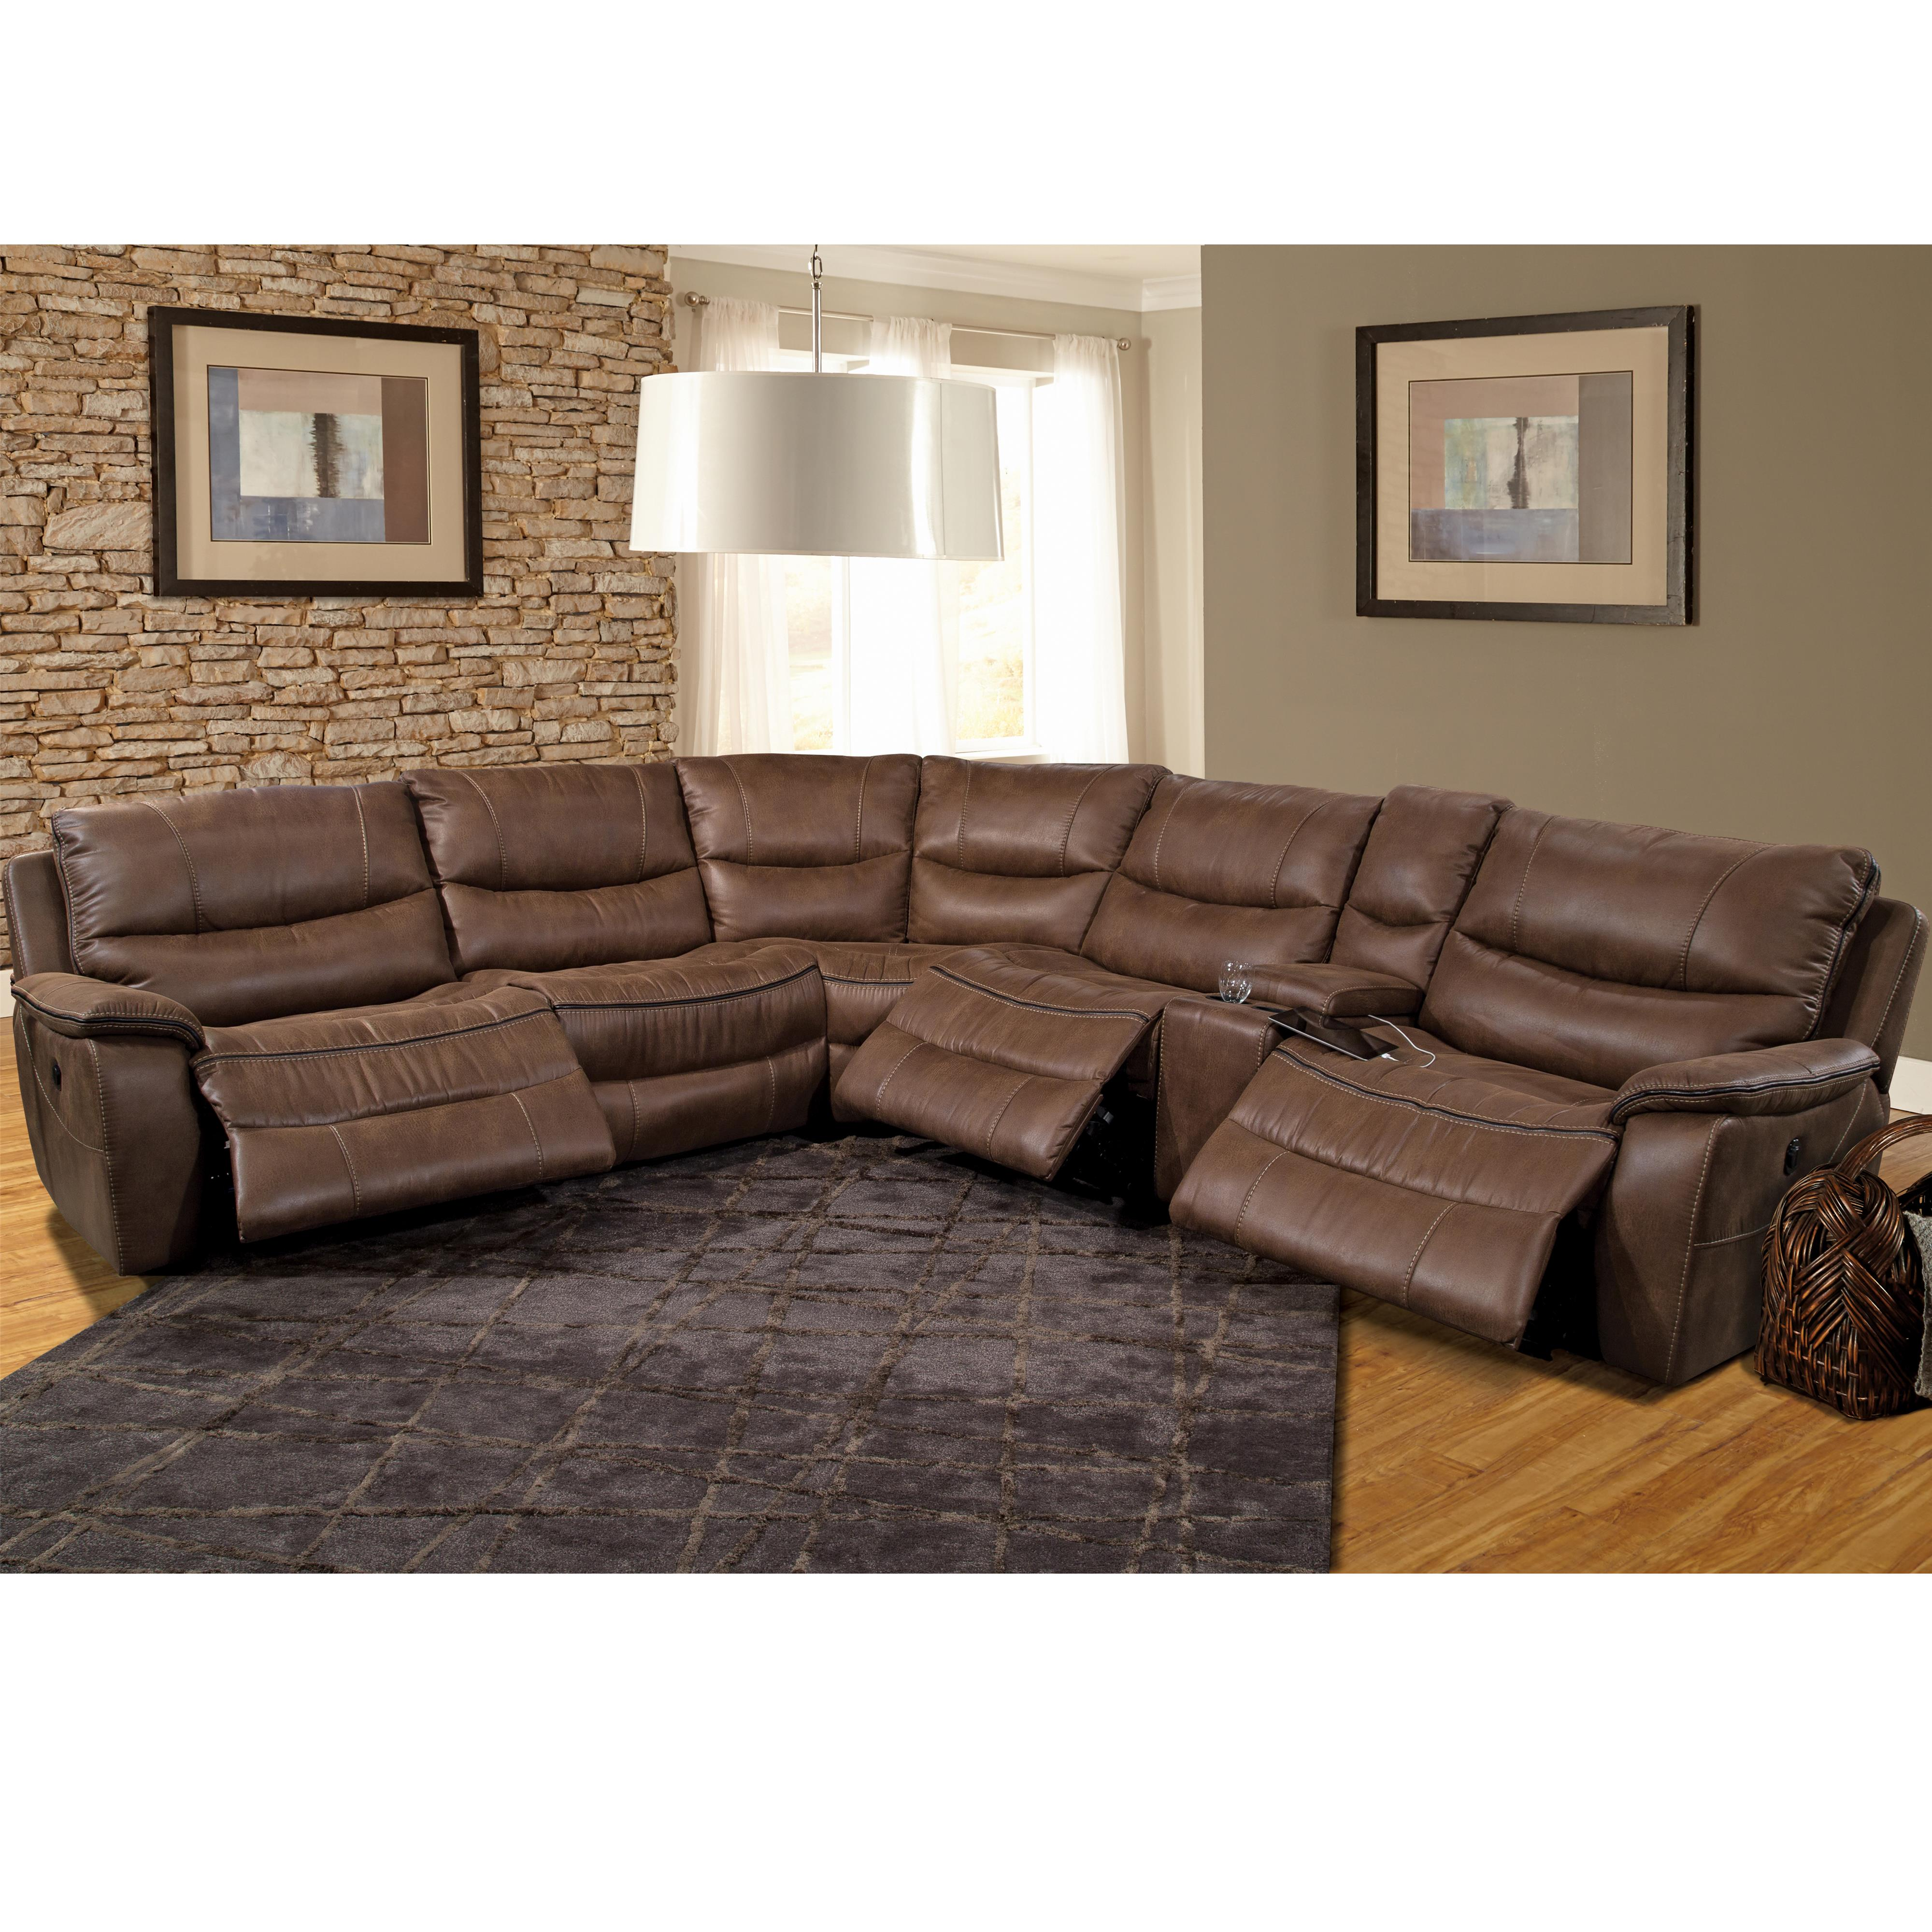 Parker Living Remus Casual Power Sectional Recliner - Item Number: MREM-PACKA-ST